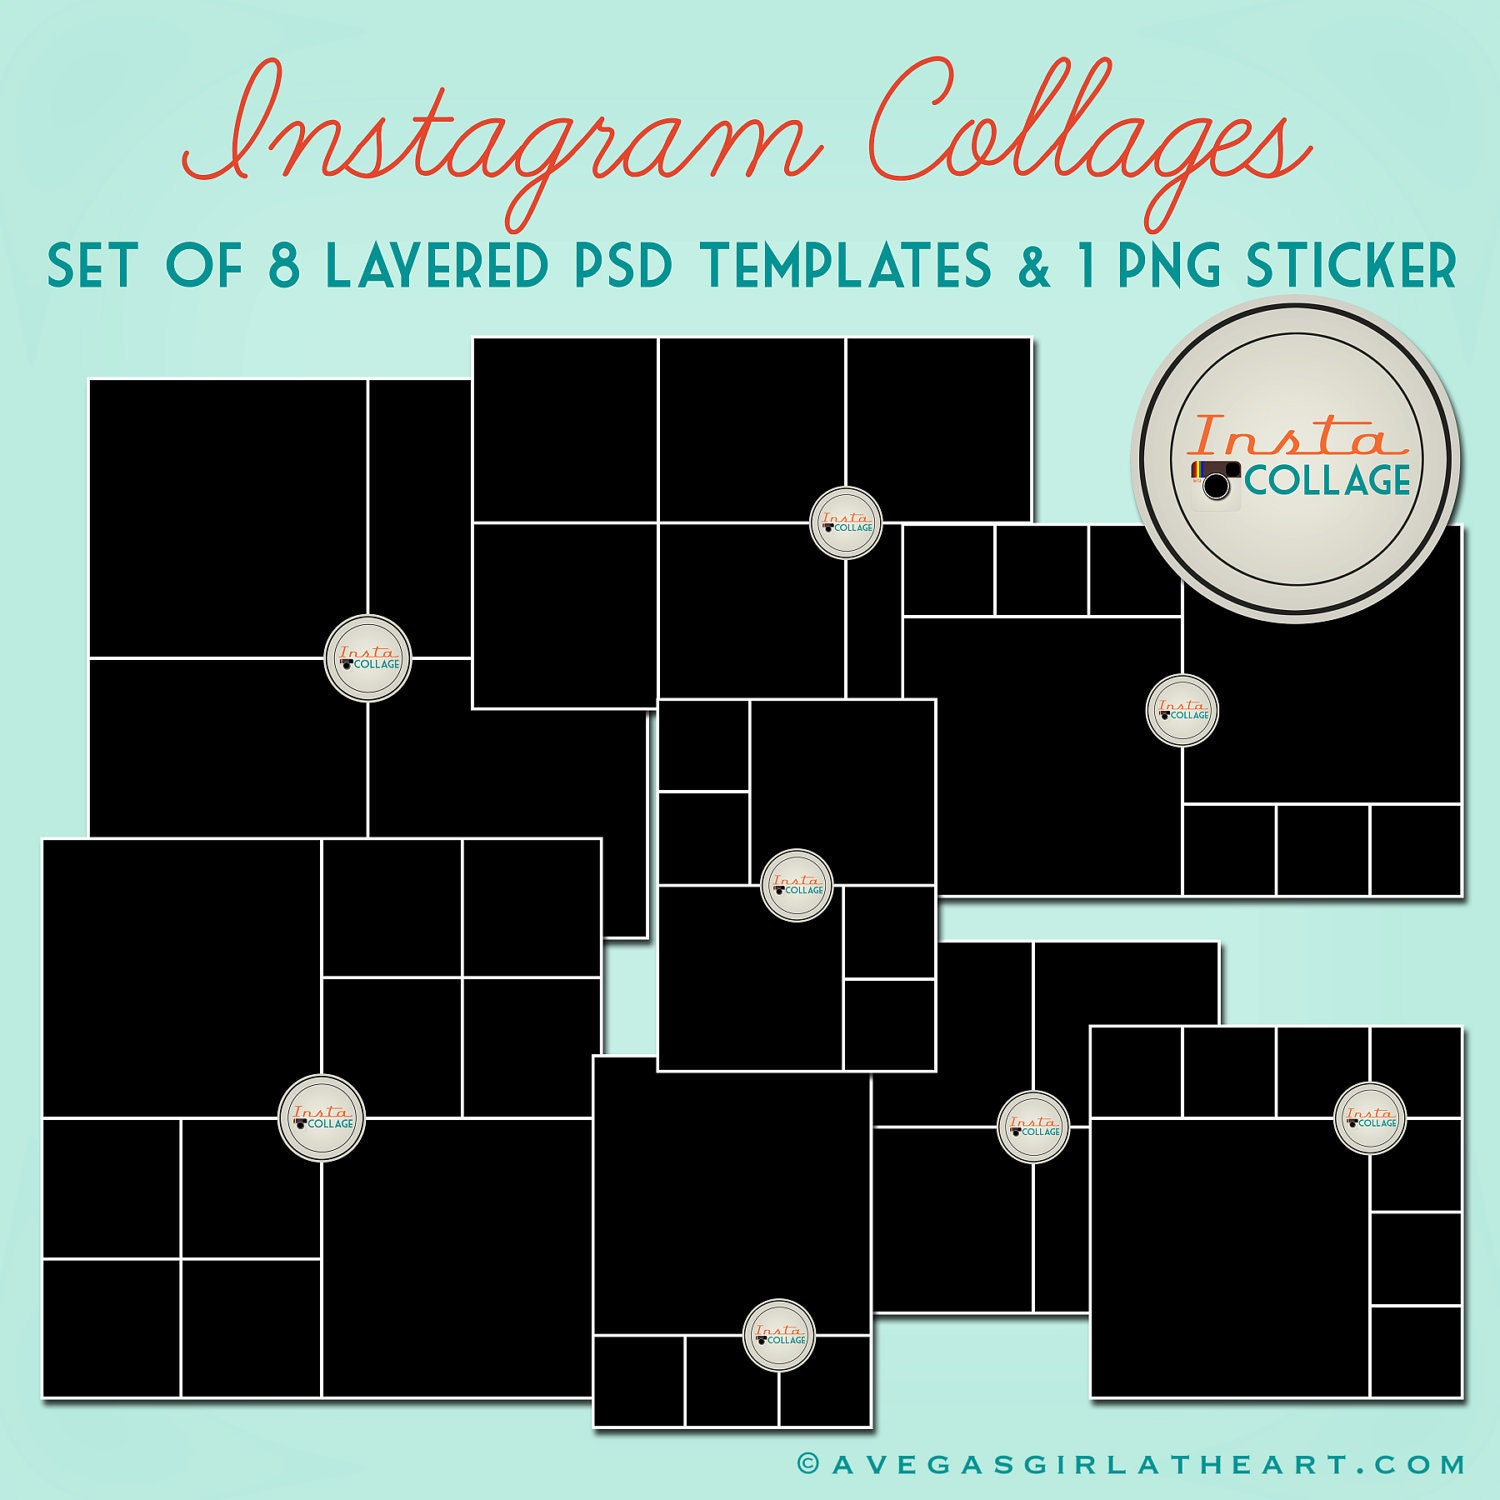 Psd Lay Out: Instagram Layered PSD Collage Templates 3x4 4x4 By Perfectloop